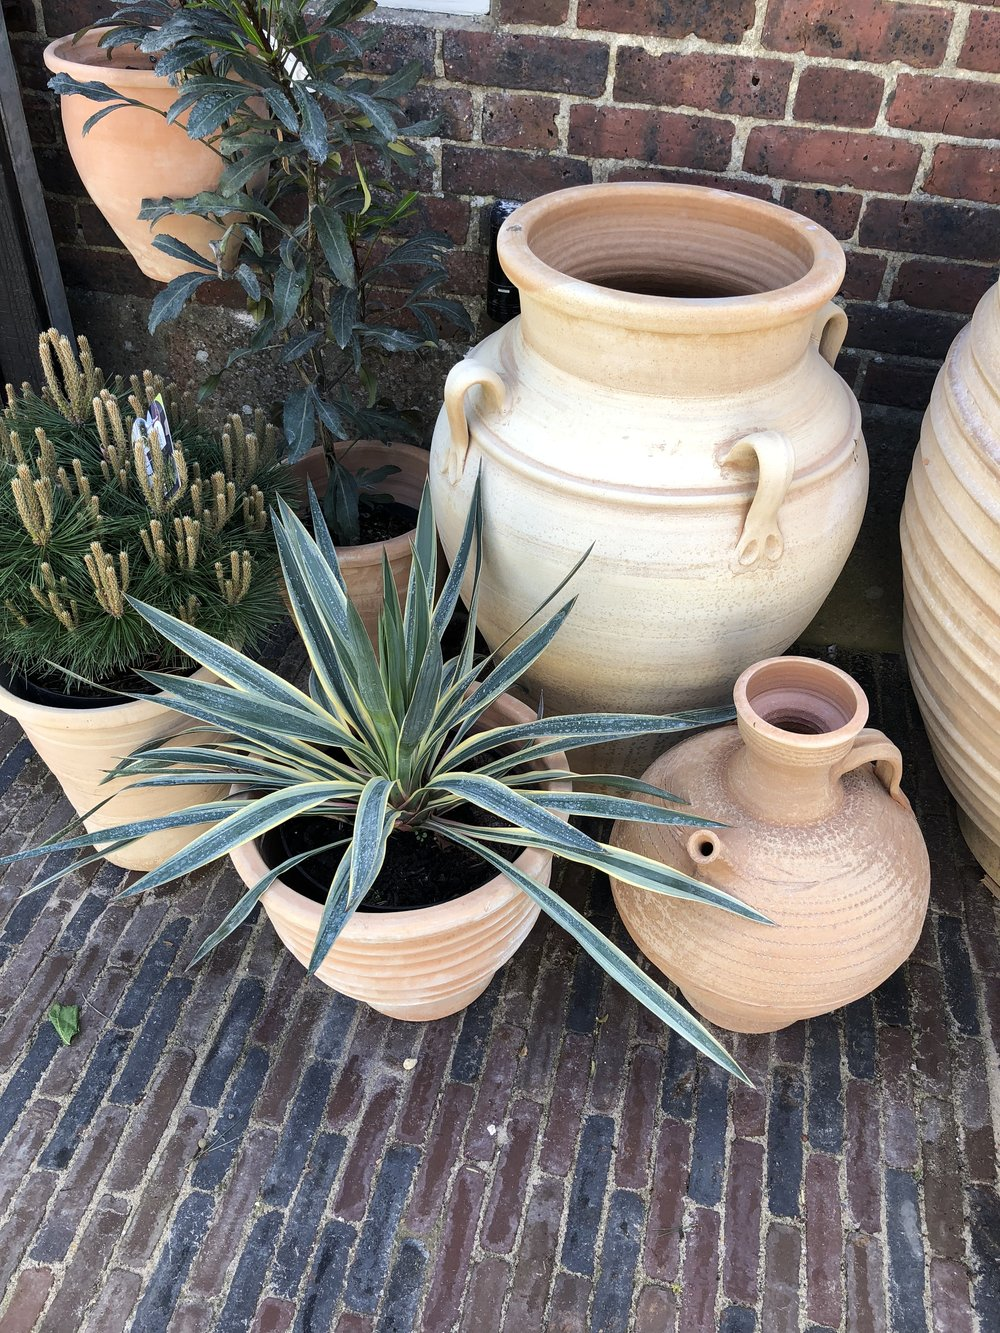 A GARDEN INSTALLATION  David and his team from  Pots & Po  ithoi are setting up our very own Riad, creating a garden in the middle of our shop ....